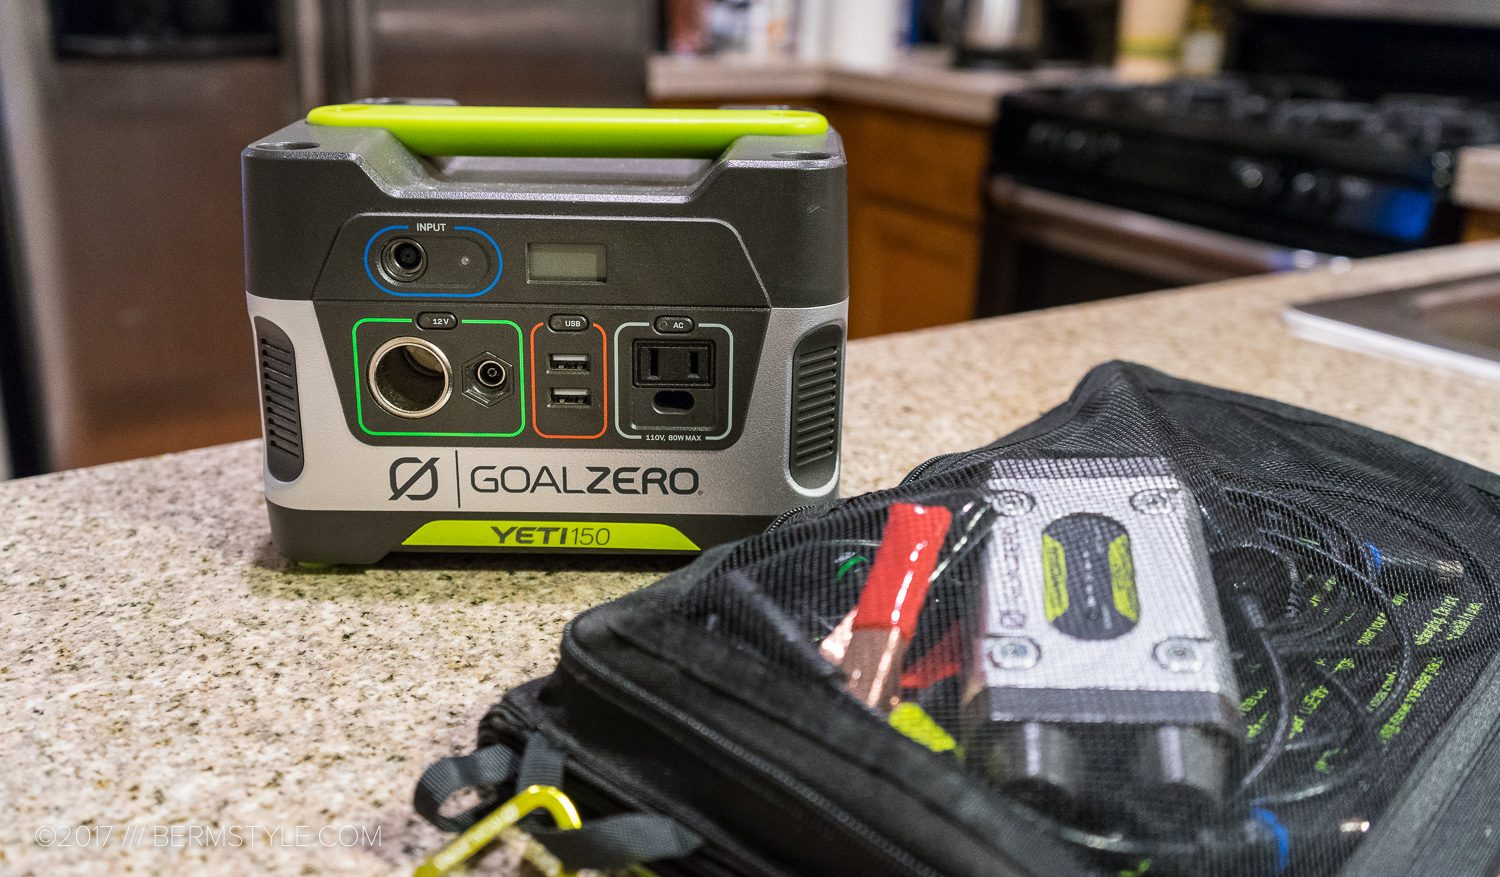 The Goal Zero Yeti 150 Portable Power Station.